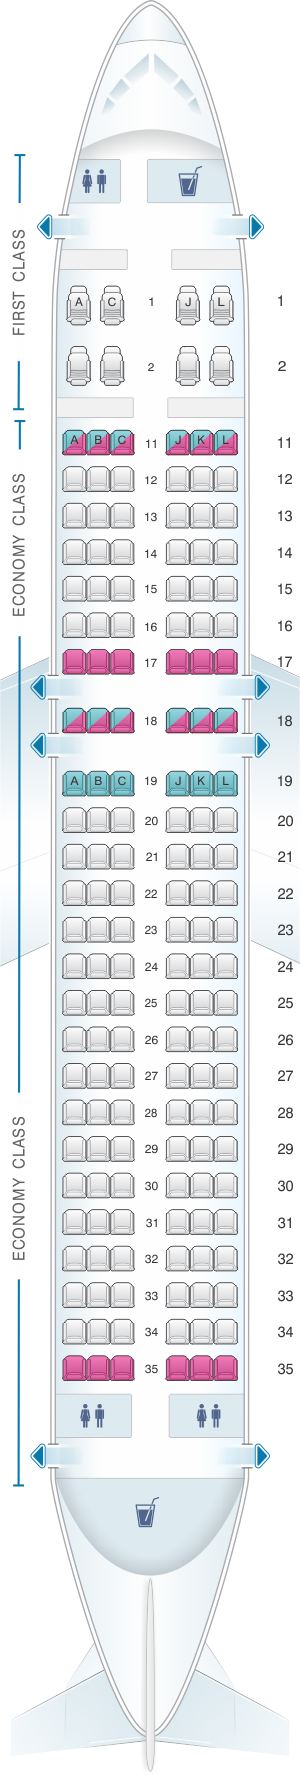 Seat map for Air China Airbus A320 200